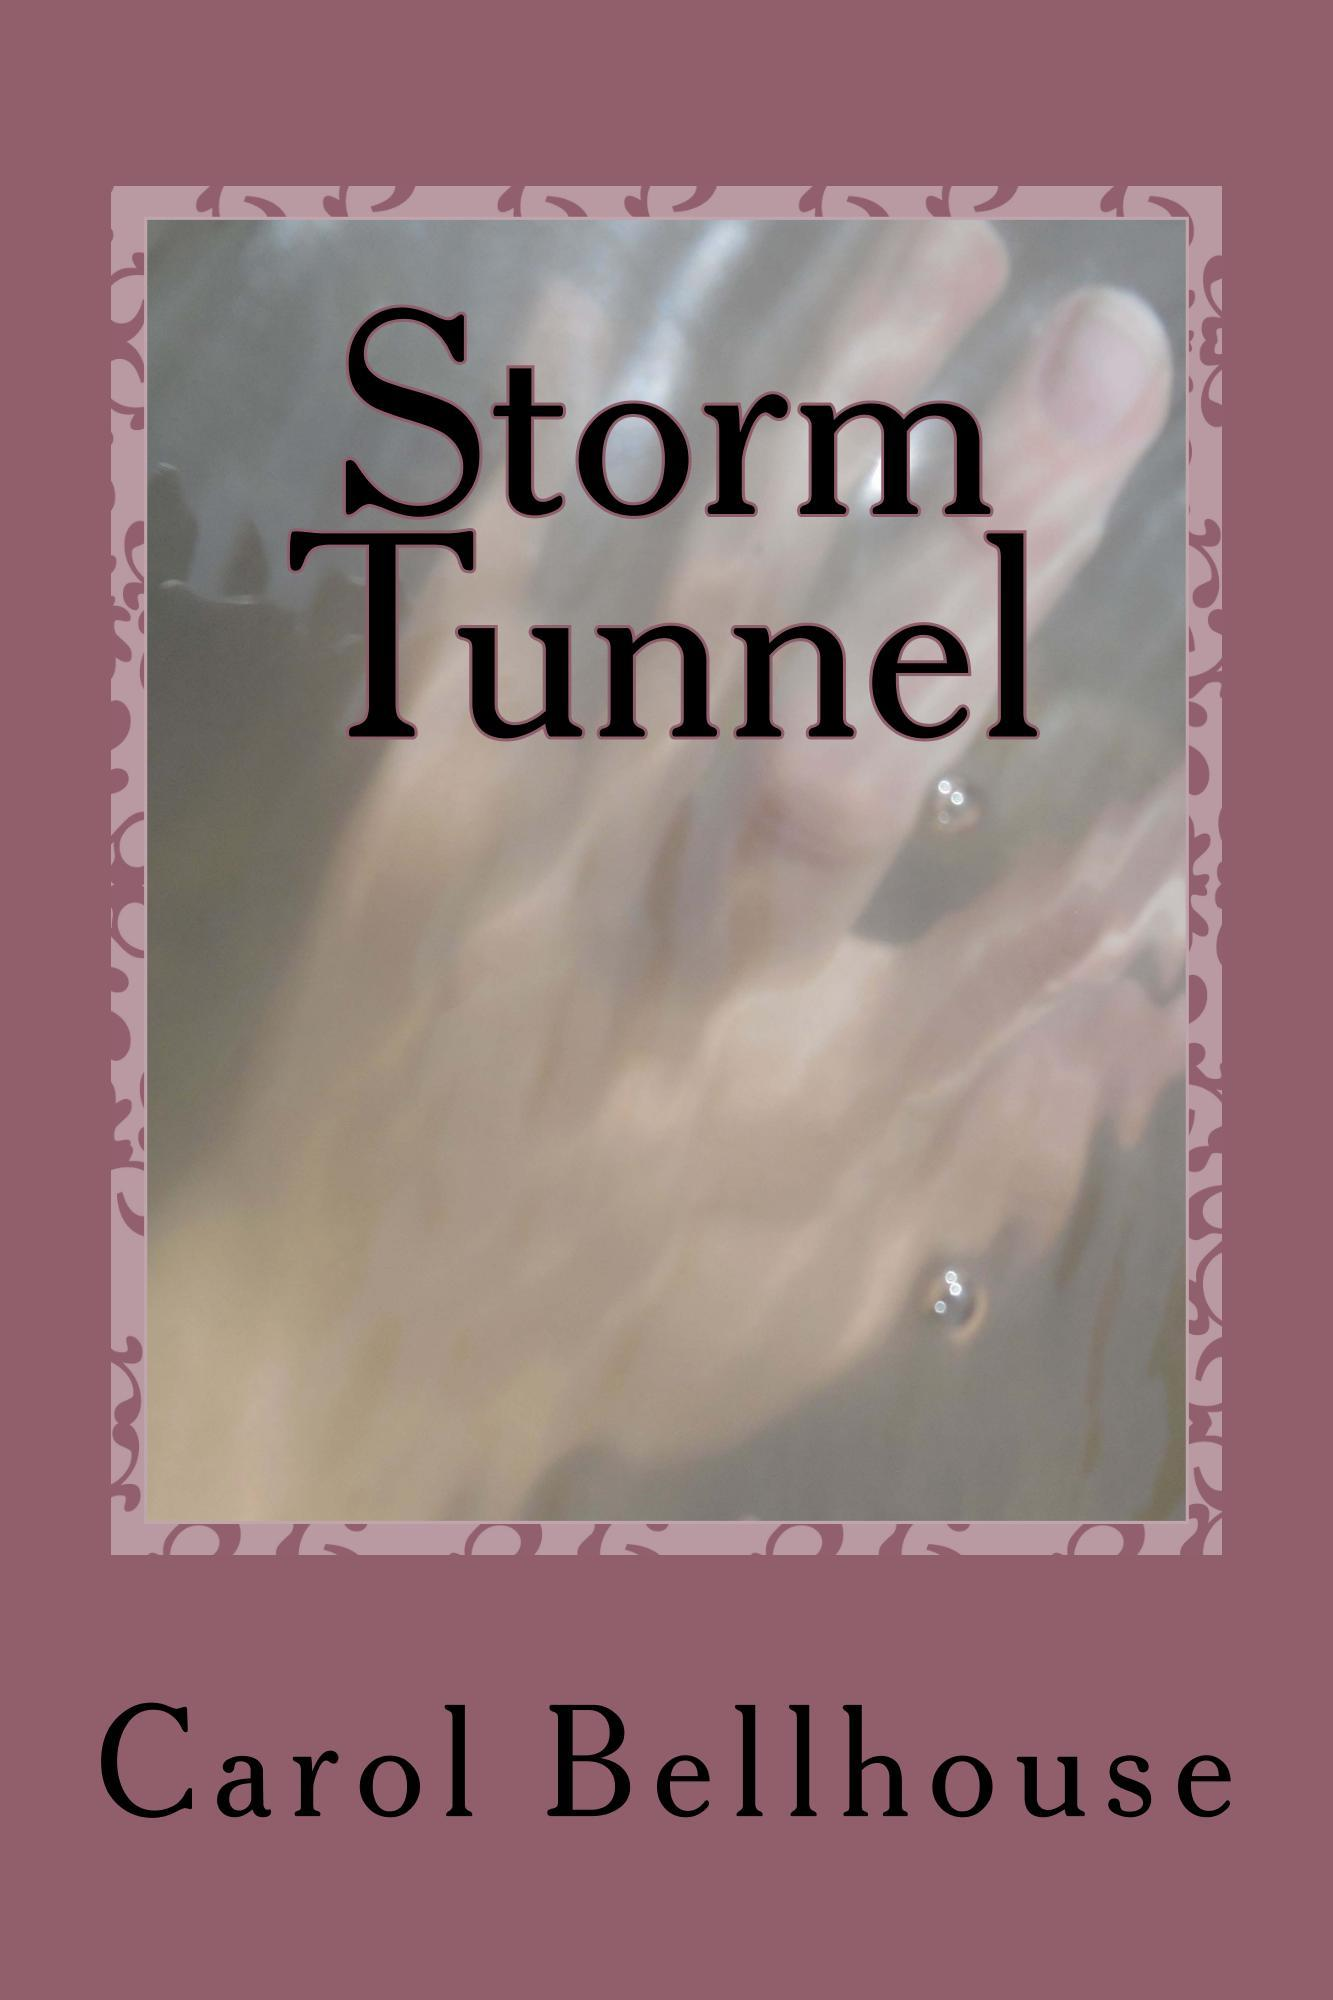 Storm Tunnel for free today and tomorrow!